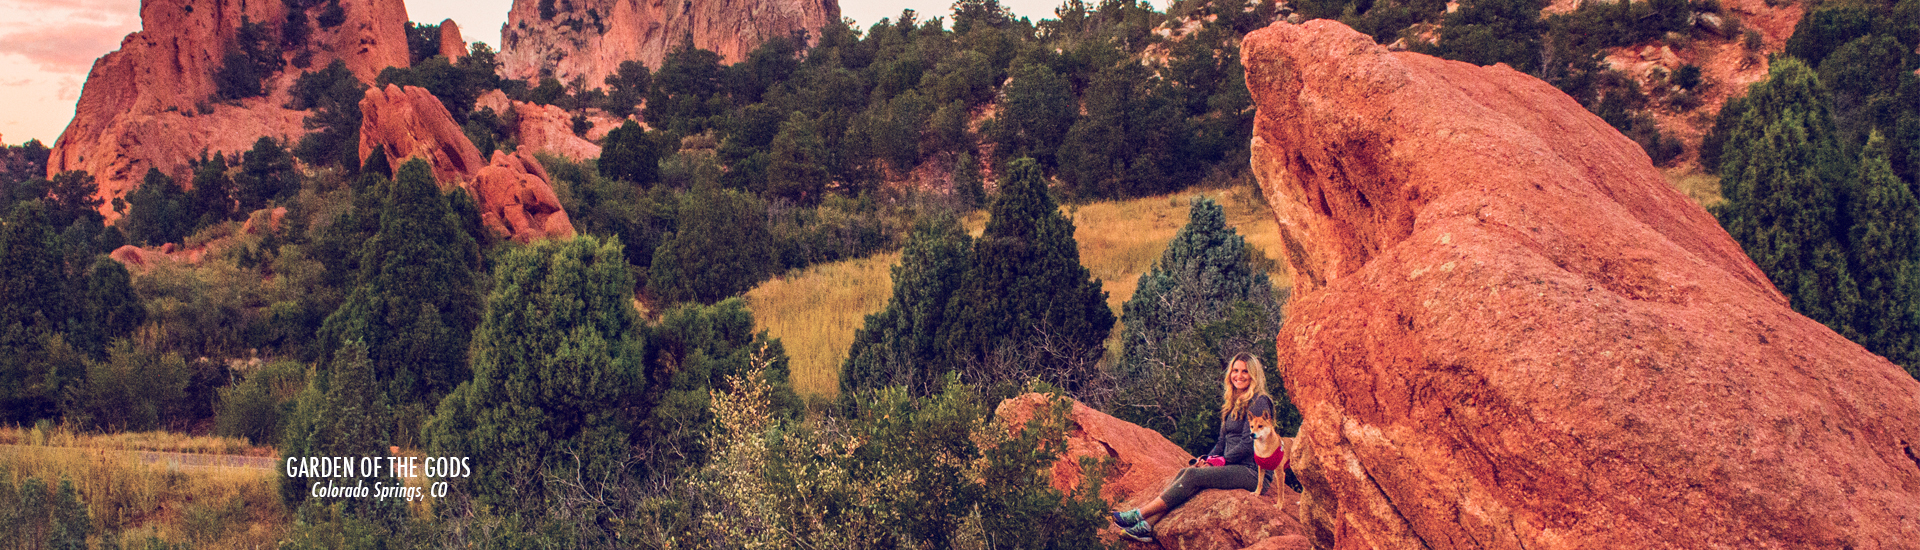 Colorado Springs - Garden of the Gods - Colorado - time travel blonde